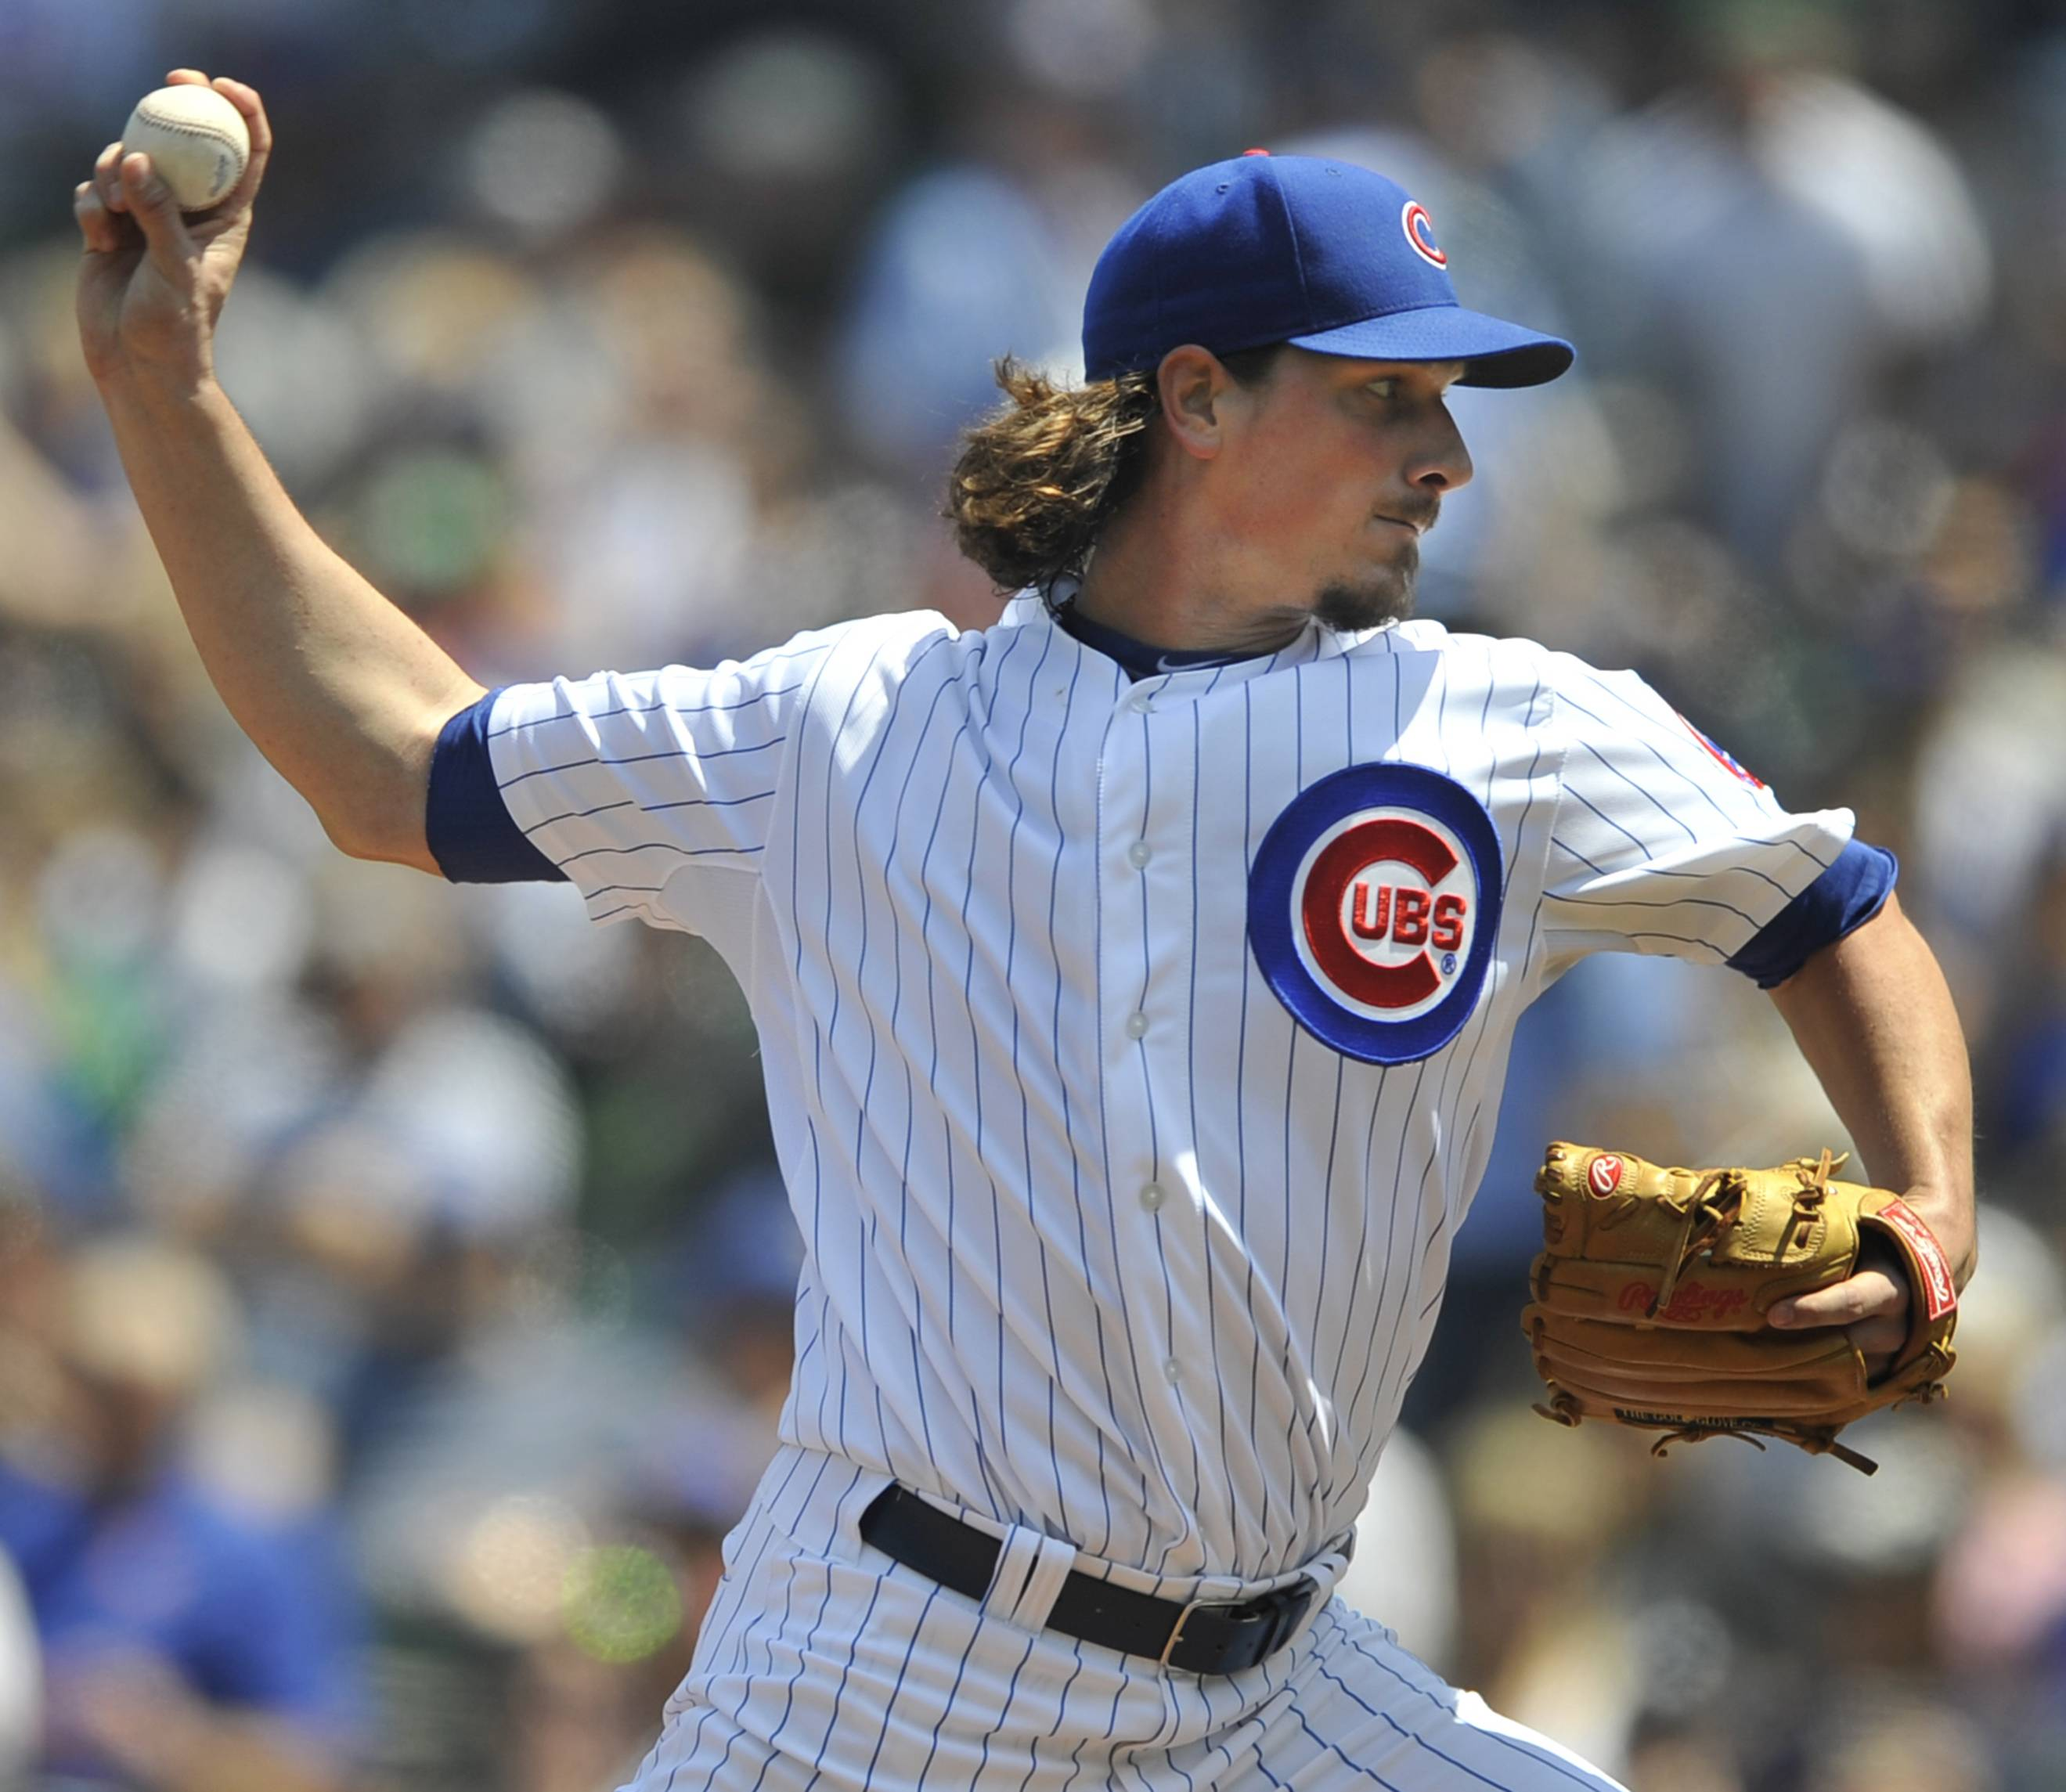 Chicago Cubs starter Jeff Samardzija delivers a pitch during the first inning of an interleague baseball game against the New York Yankees in Chicago, May 21, 2014.